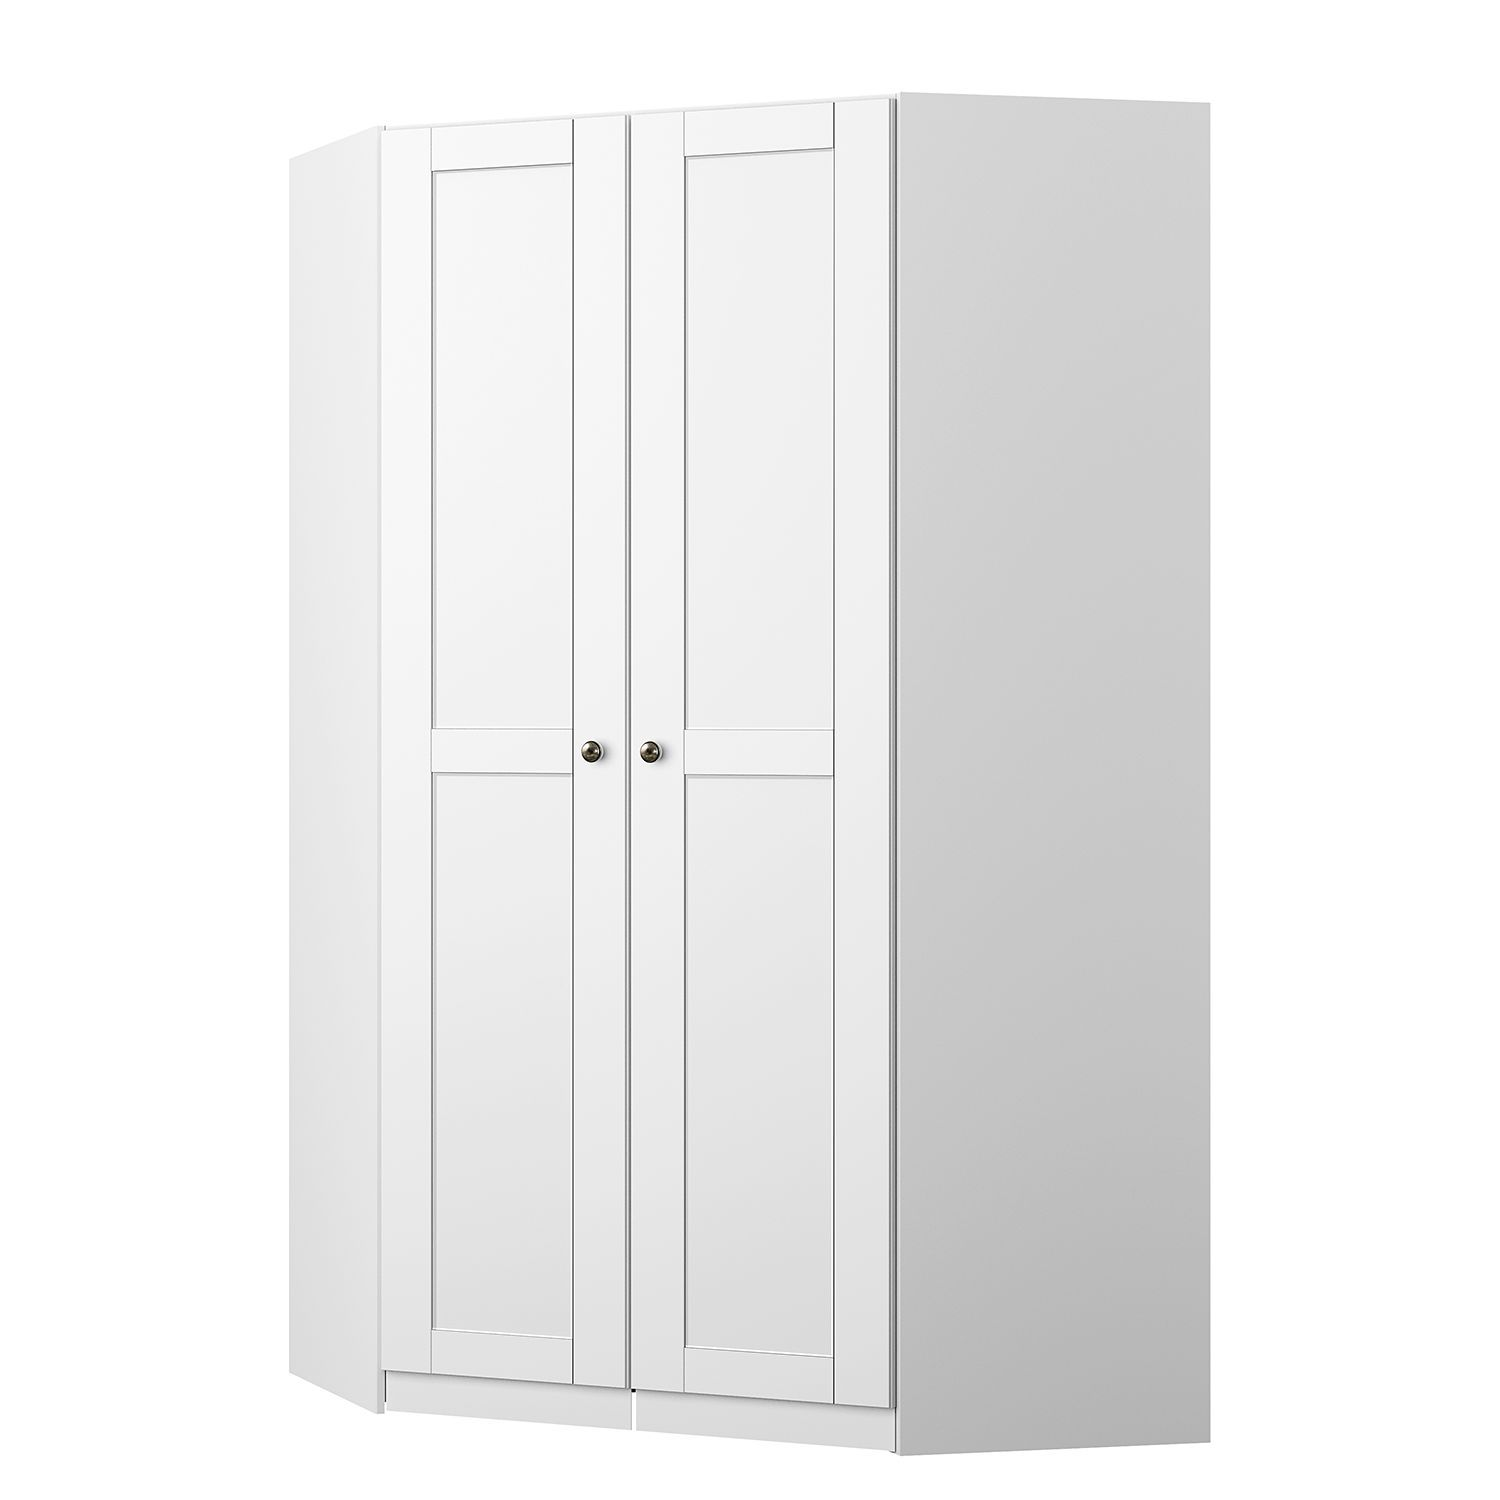 Armoire Dressing 3 Portes Coulissantes Armoire D Angle Kiydoo Landhaus I Armoires Armoire Dressing